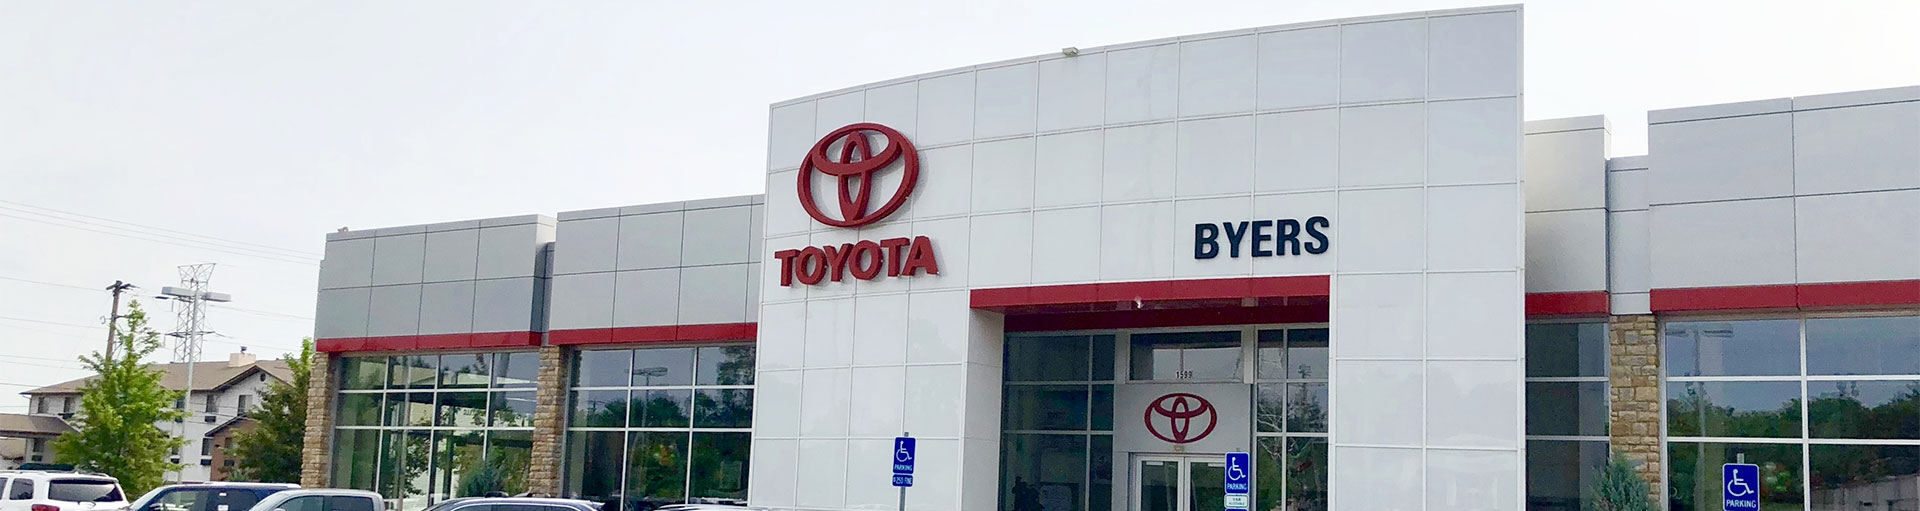 Byers Toyota Tire Department